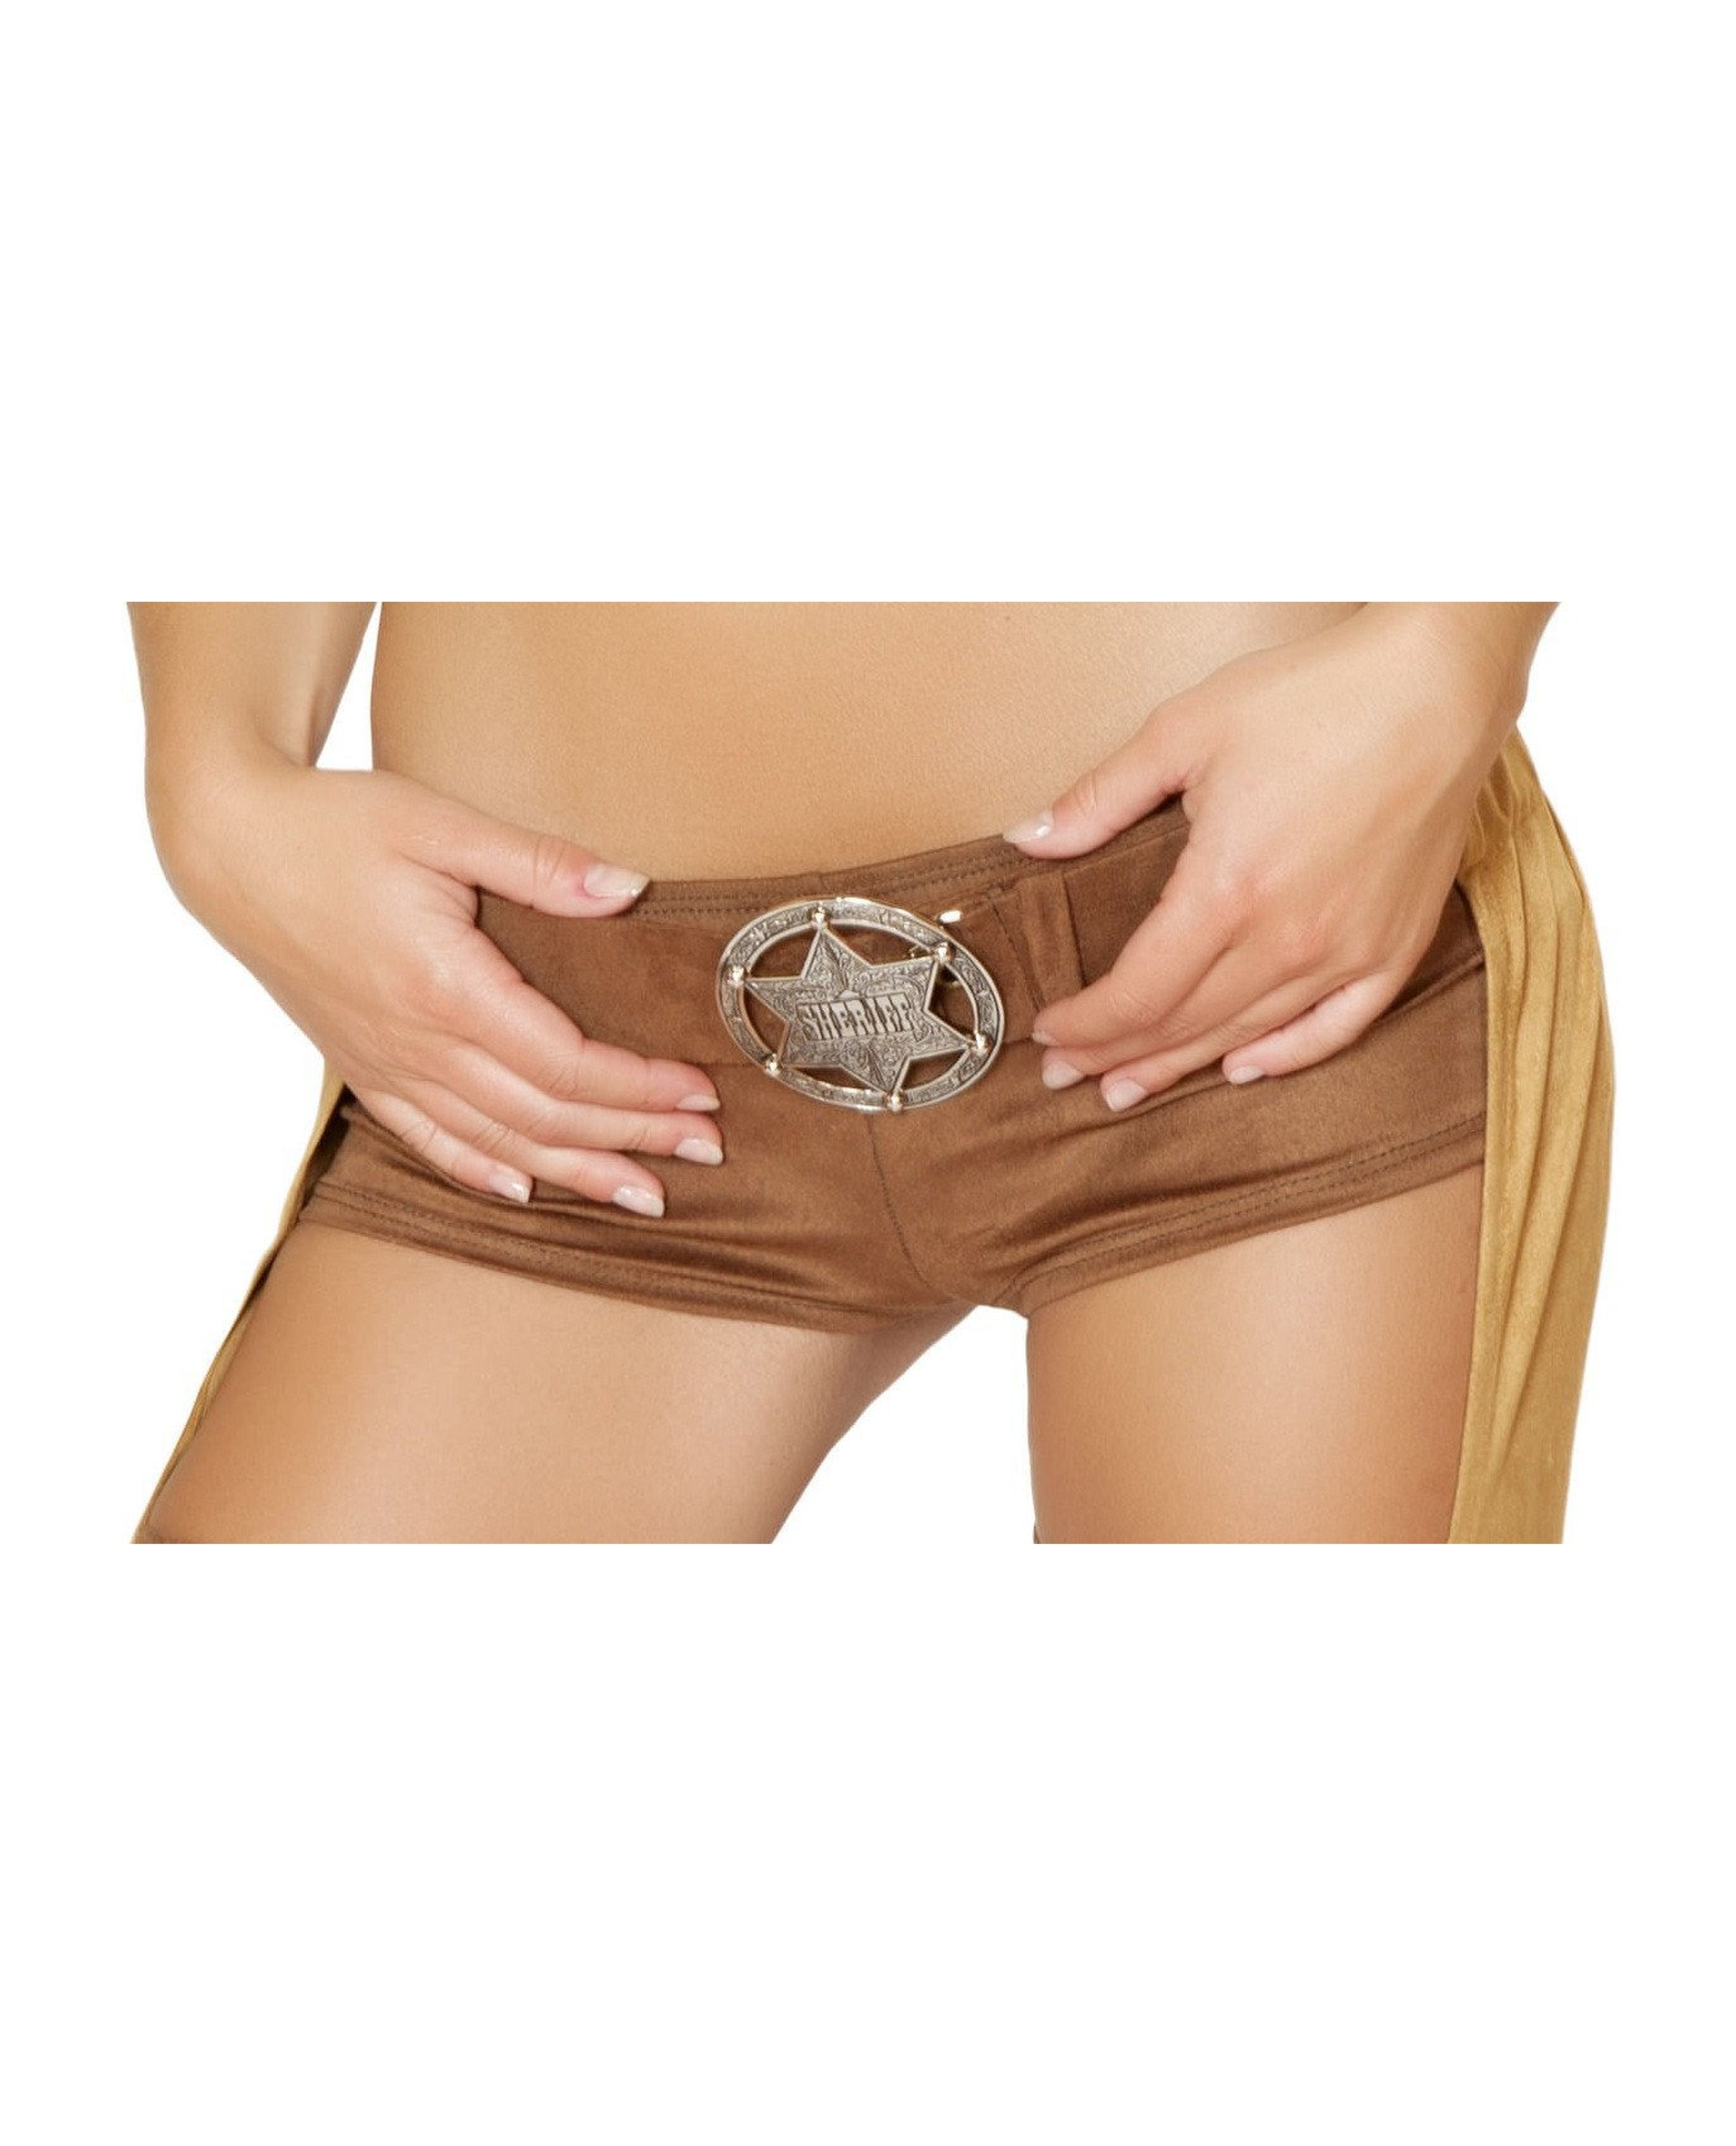 Sheriff Belt Buckle costumes Size One SizeColor SilverNakees